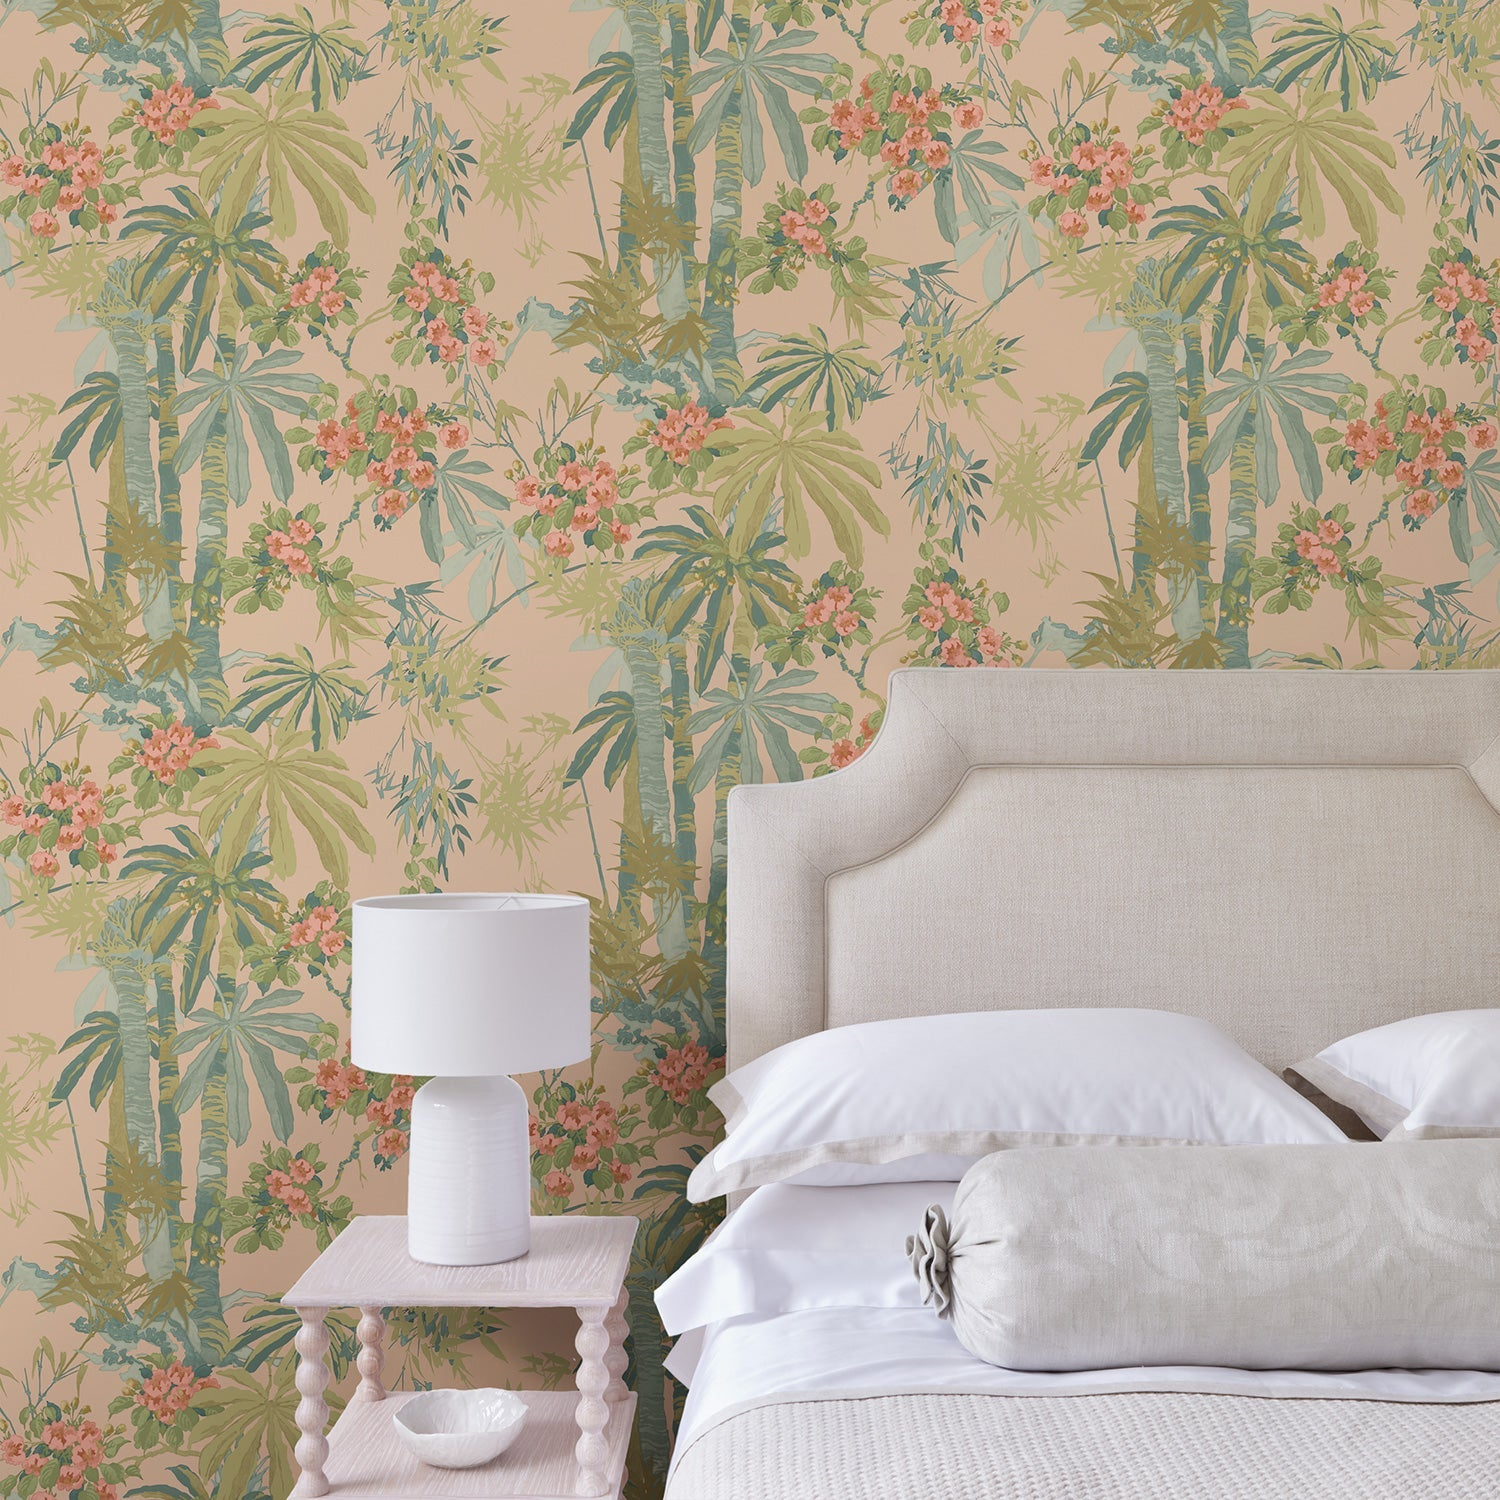 Bedroom featuring a Designer wallpaper with a pink tropical palm tree design